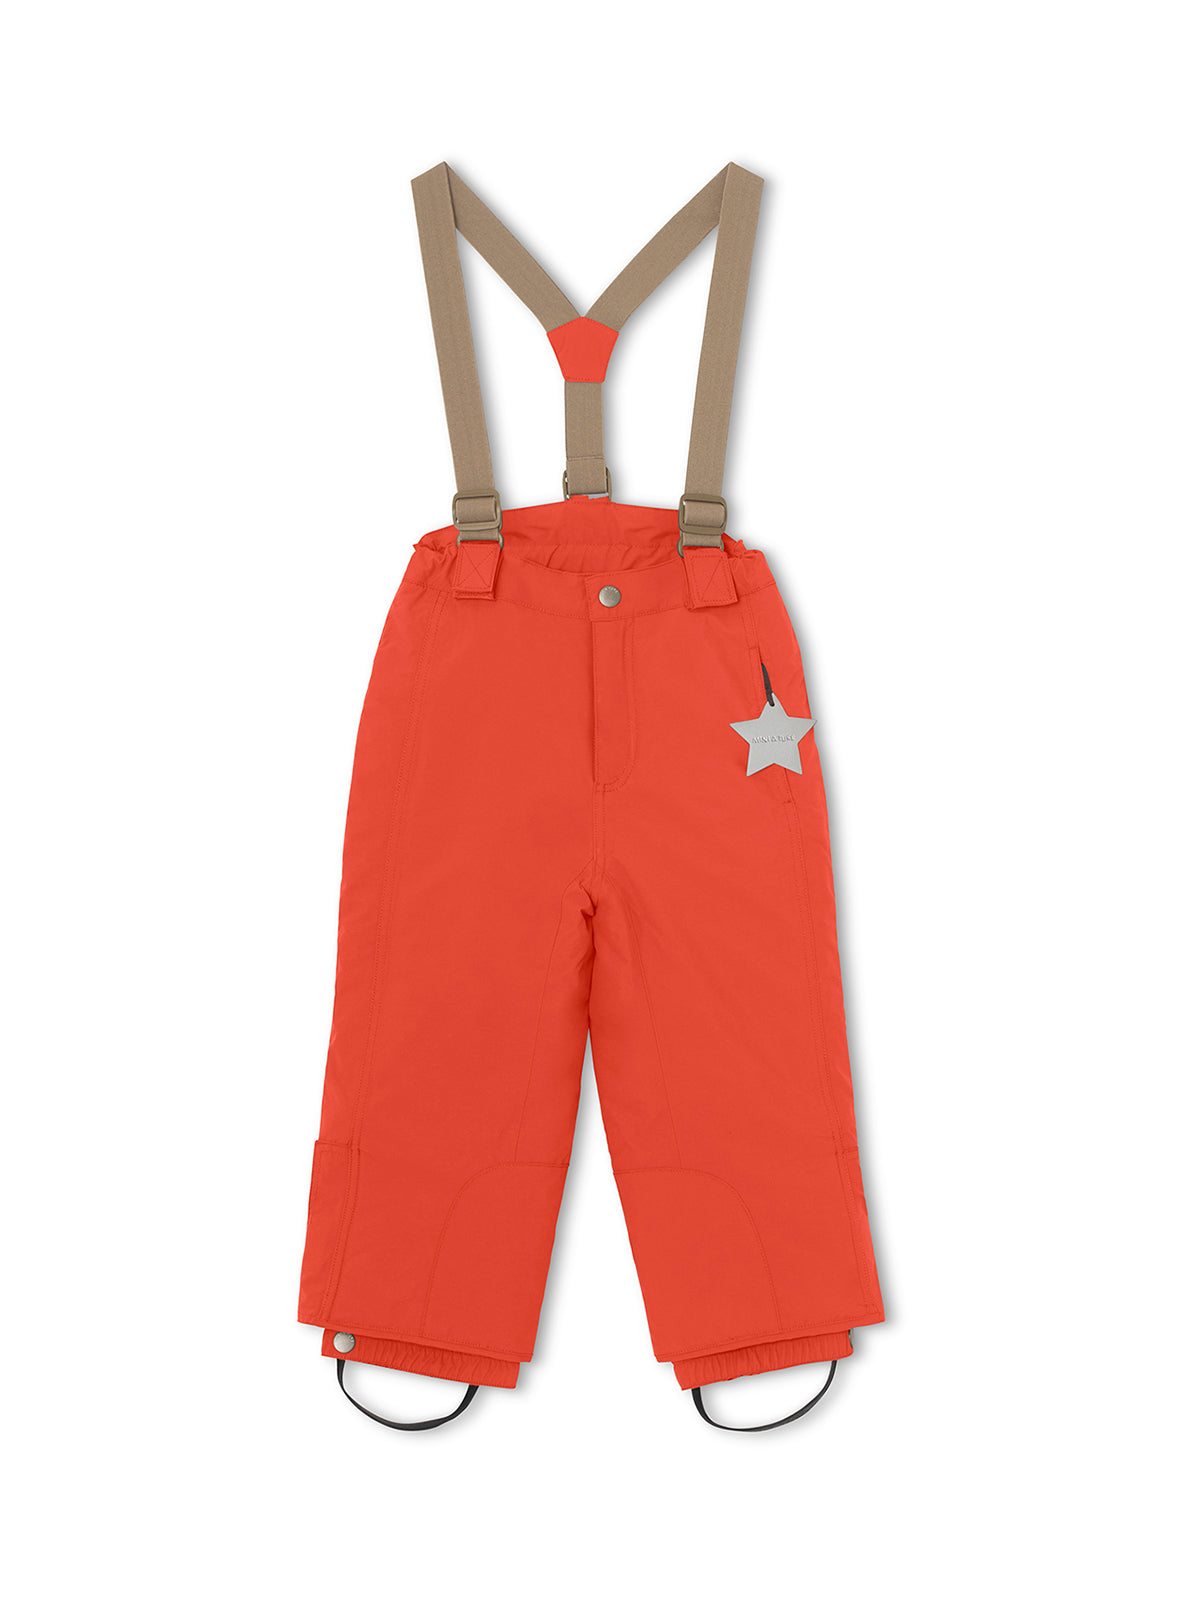 Witte Pants - Rooibos Tea Orange